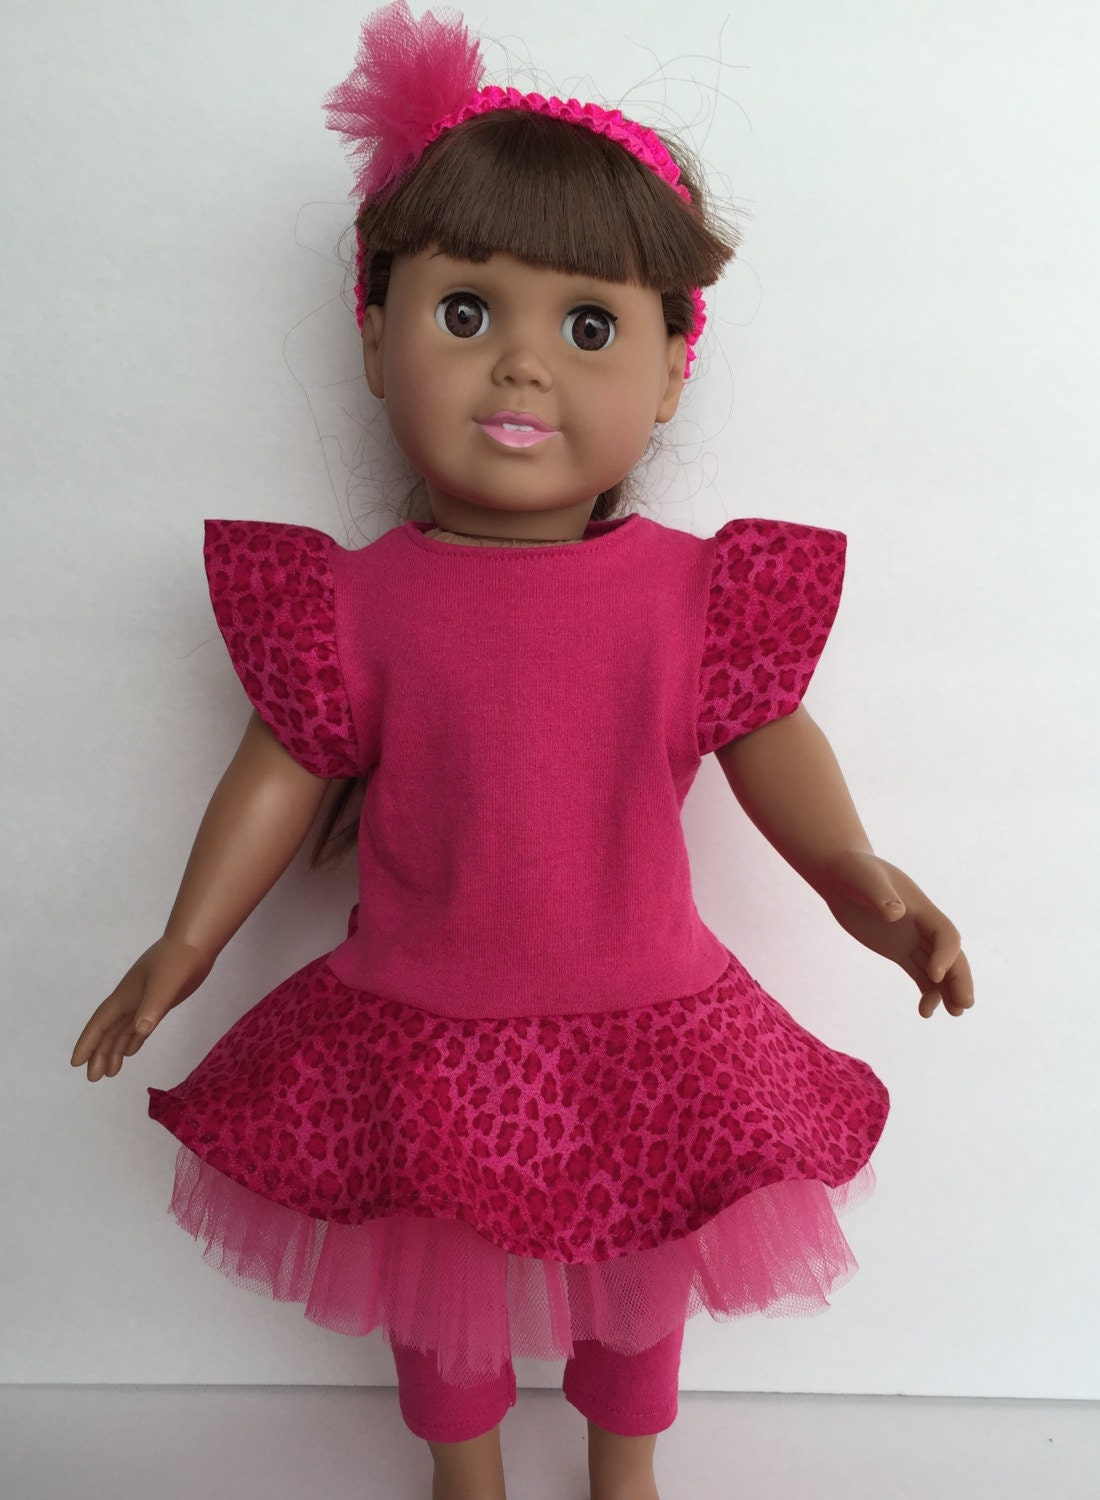 SALE Cute 18 Inch Doll Hot Pink Leopard By